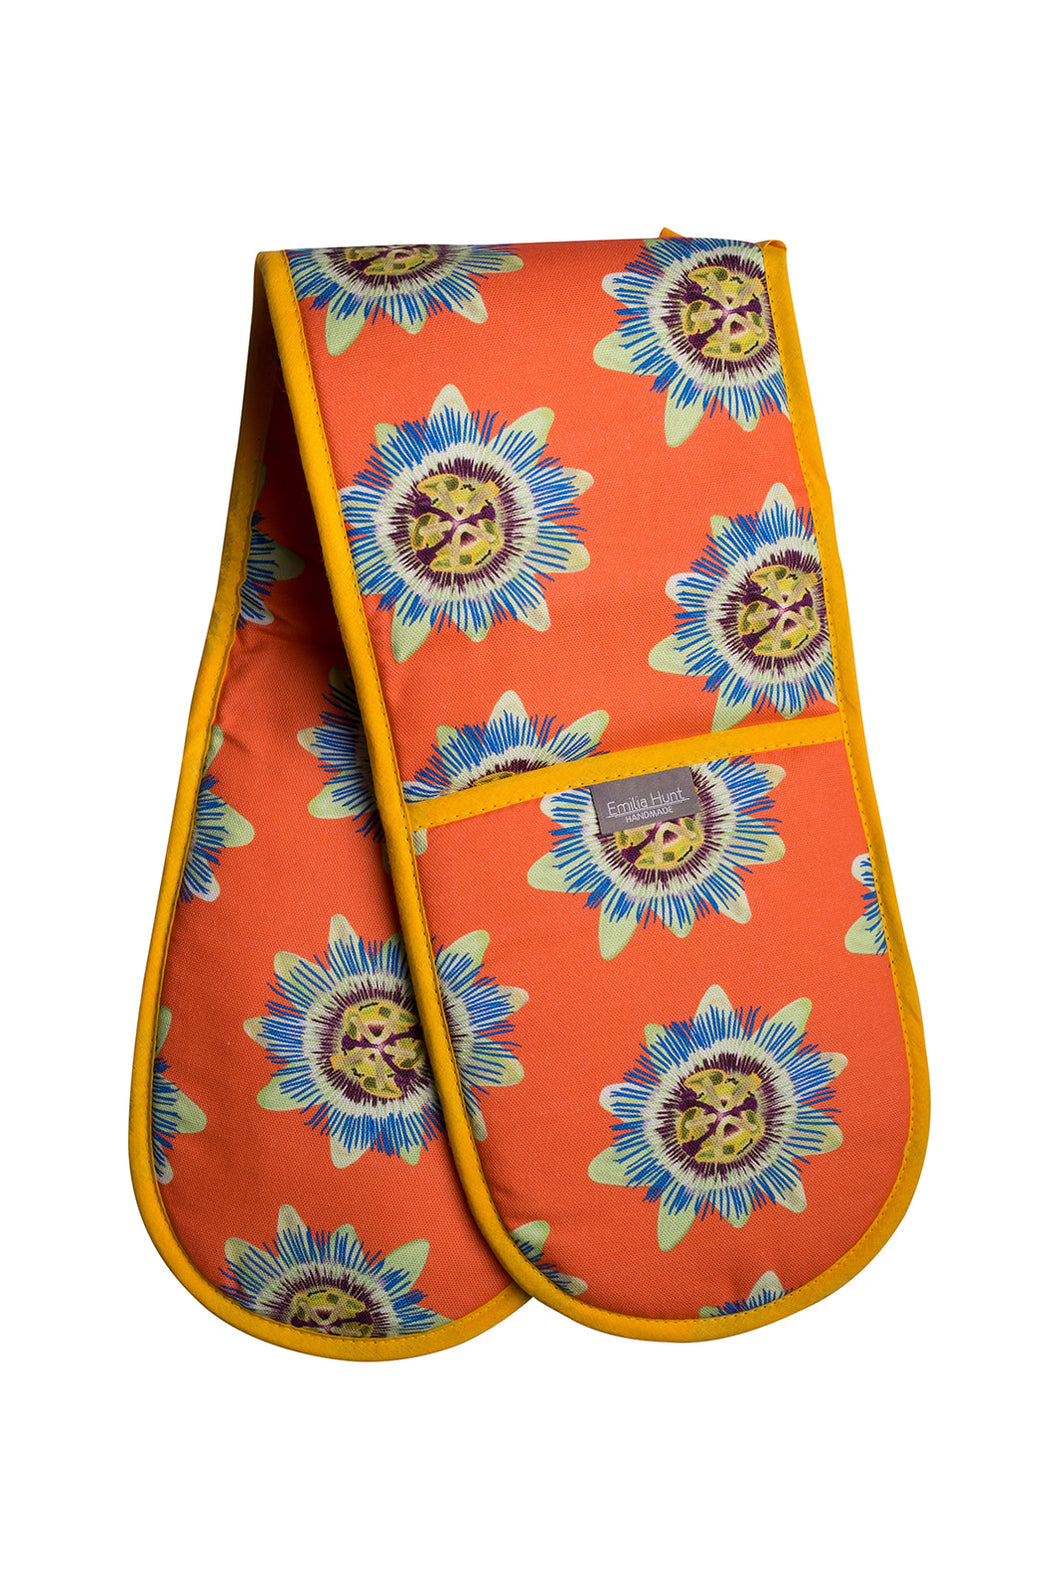 Coral Passion Flower Double Oven Gloves